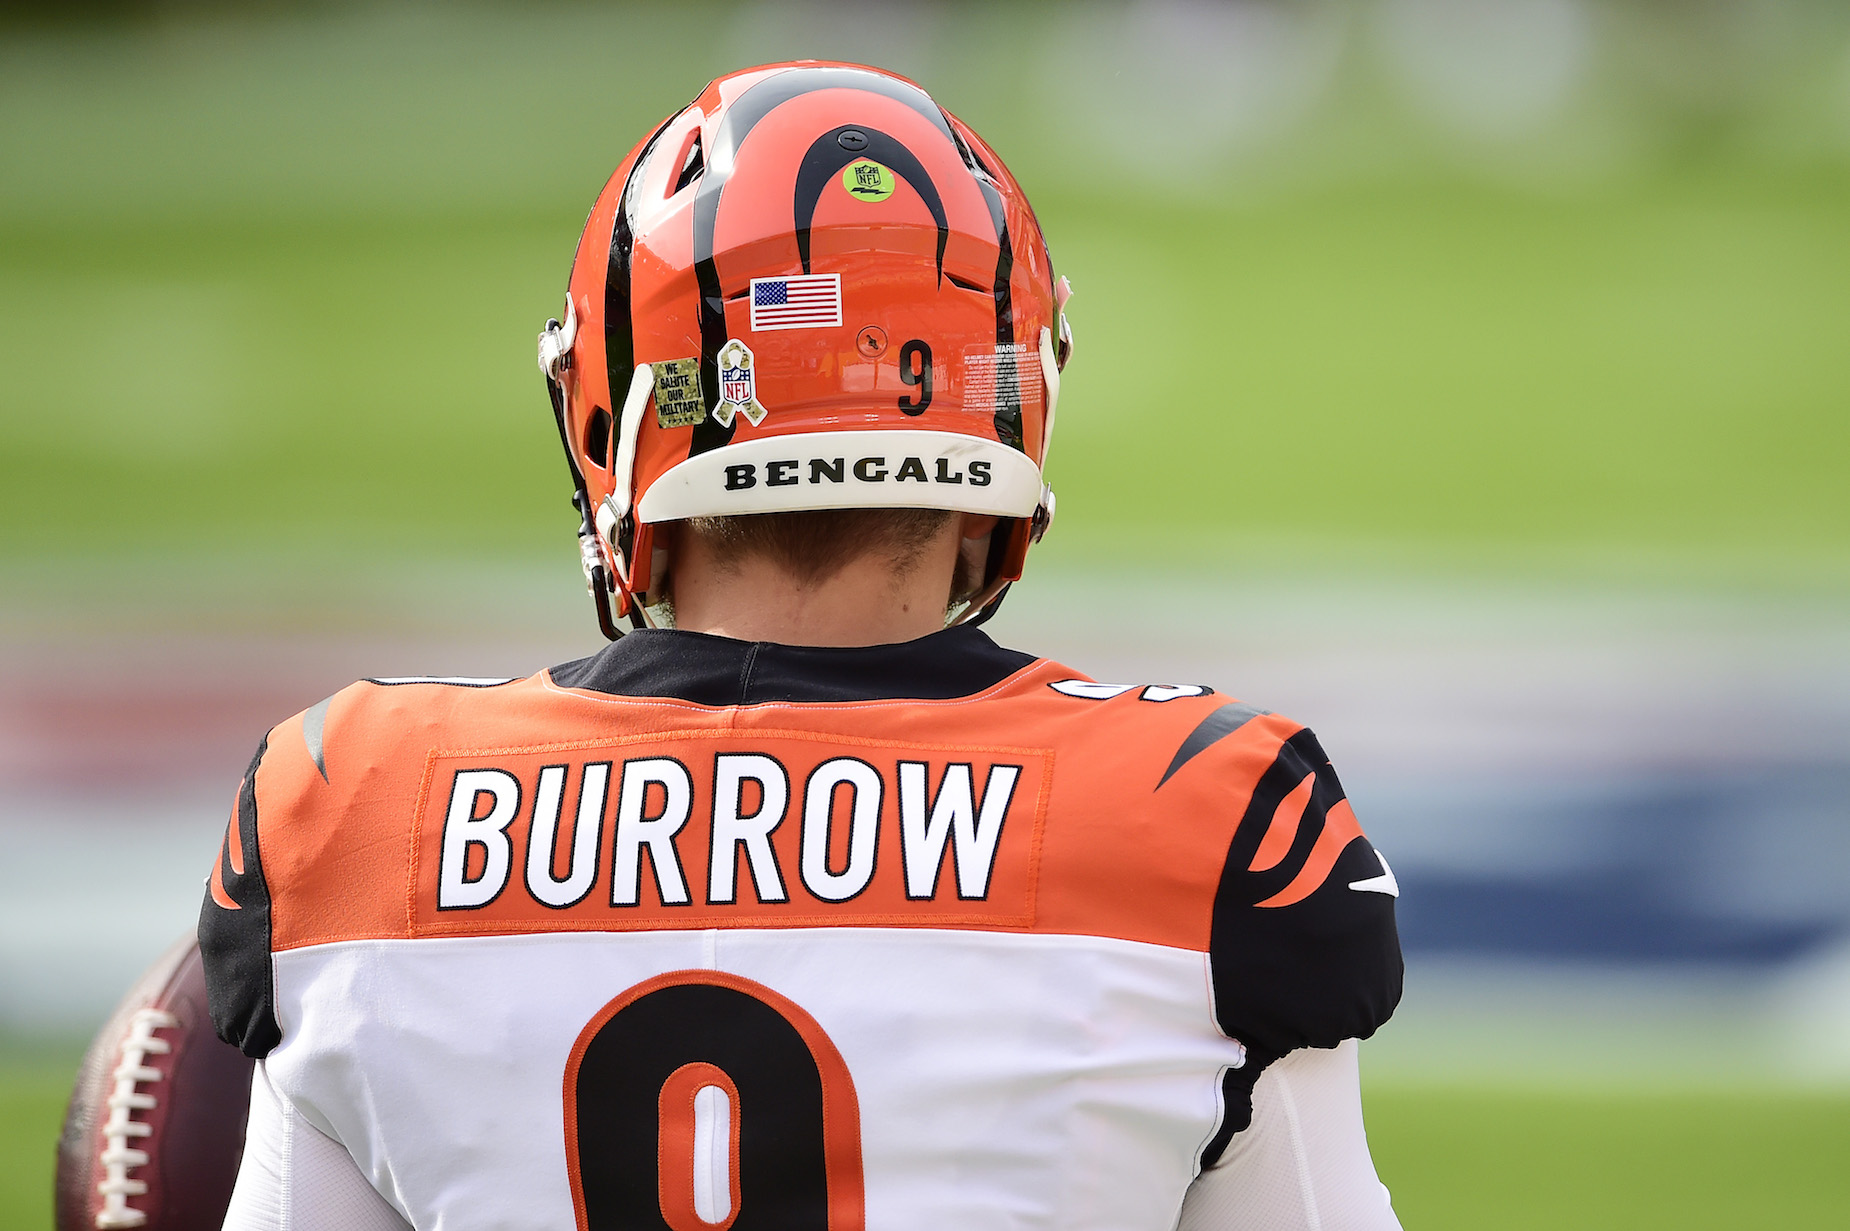 Joe Burrow Is Already Impressing the Bengals With His Rehab Efforts: 'His Pain Tolerance Has To Be Ridiculous'